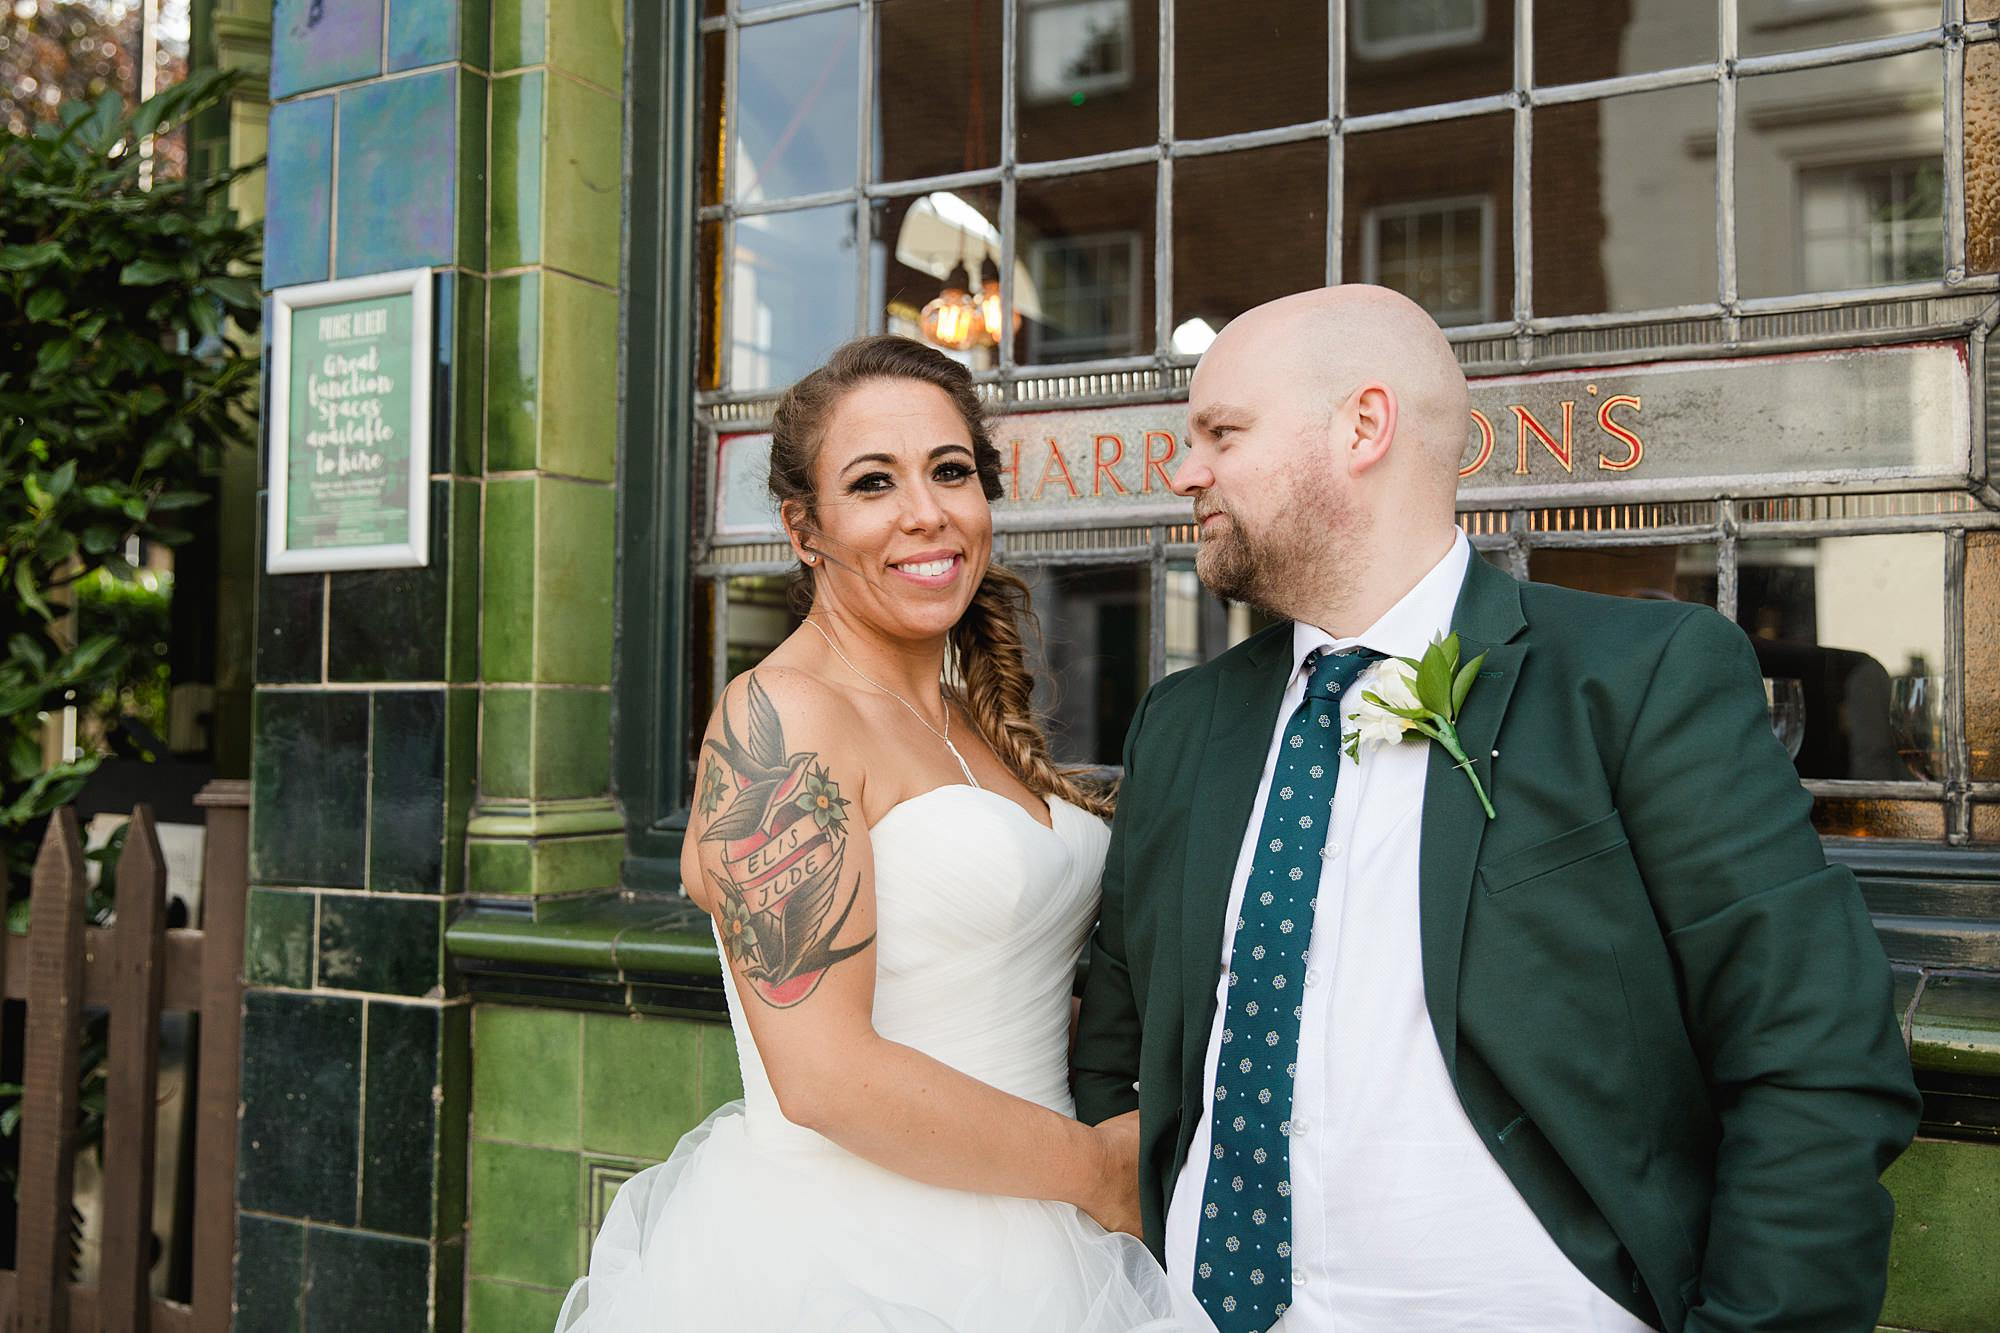 Prince albert camden wedding bride and groom outside pub